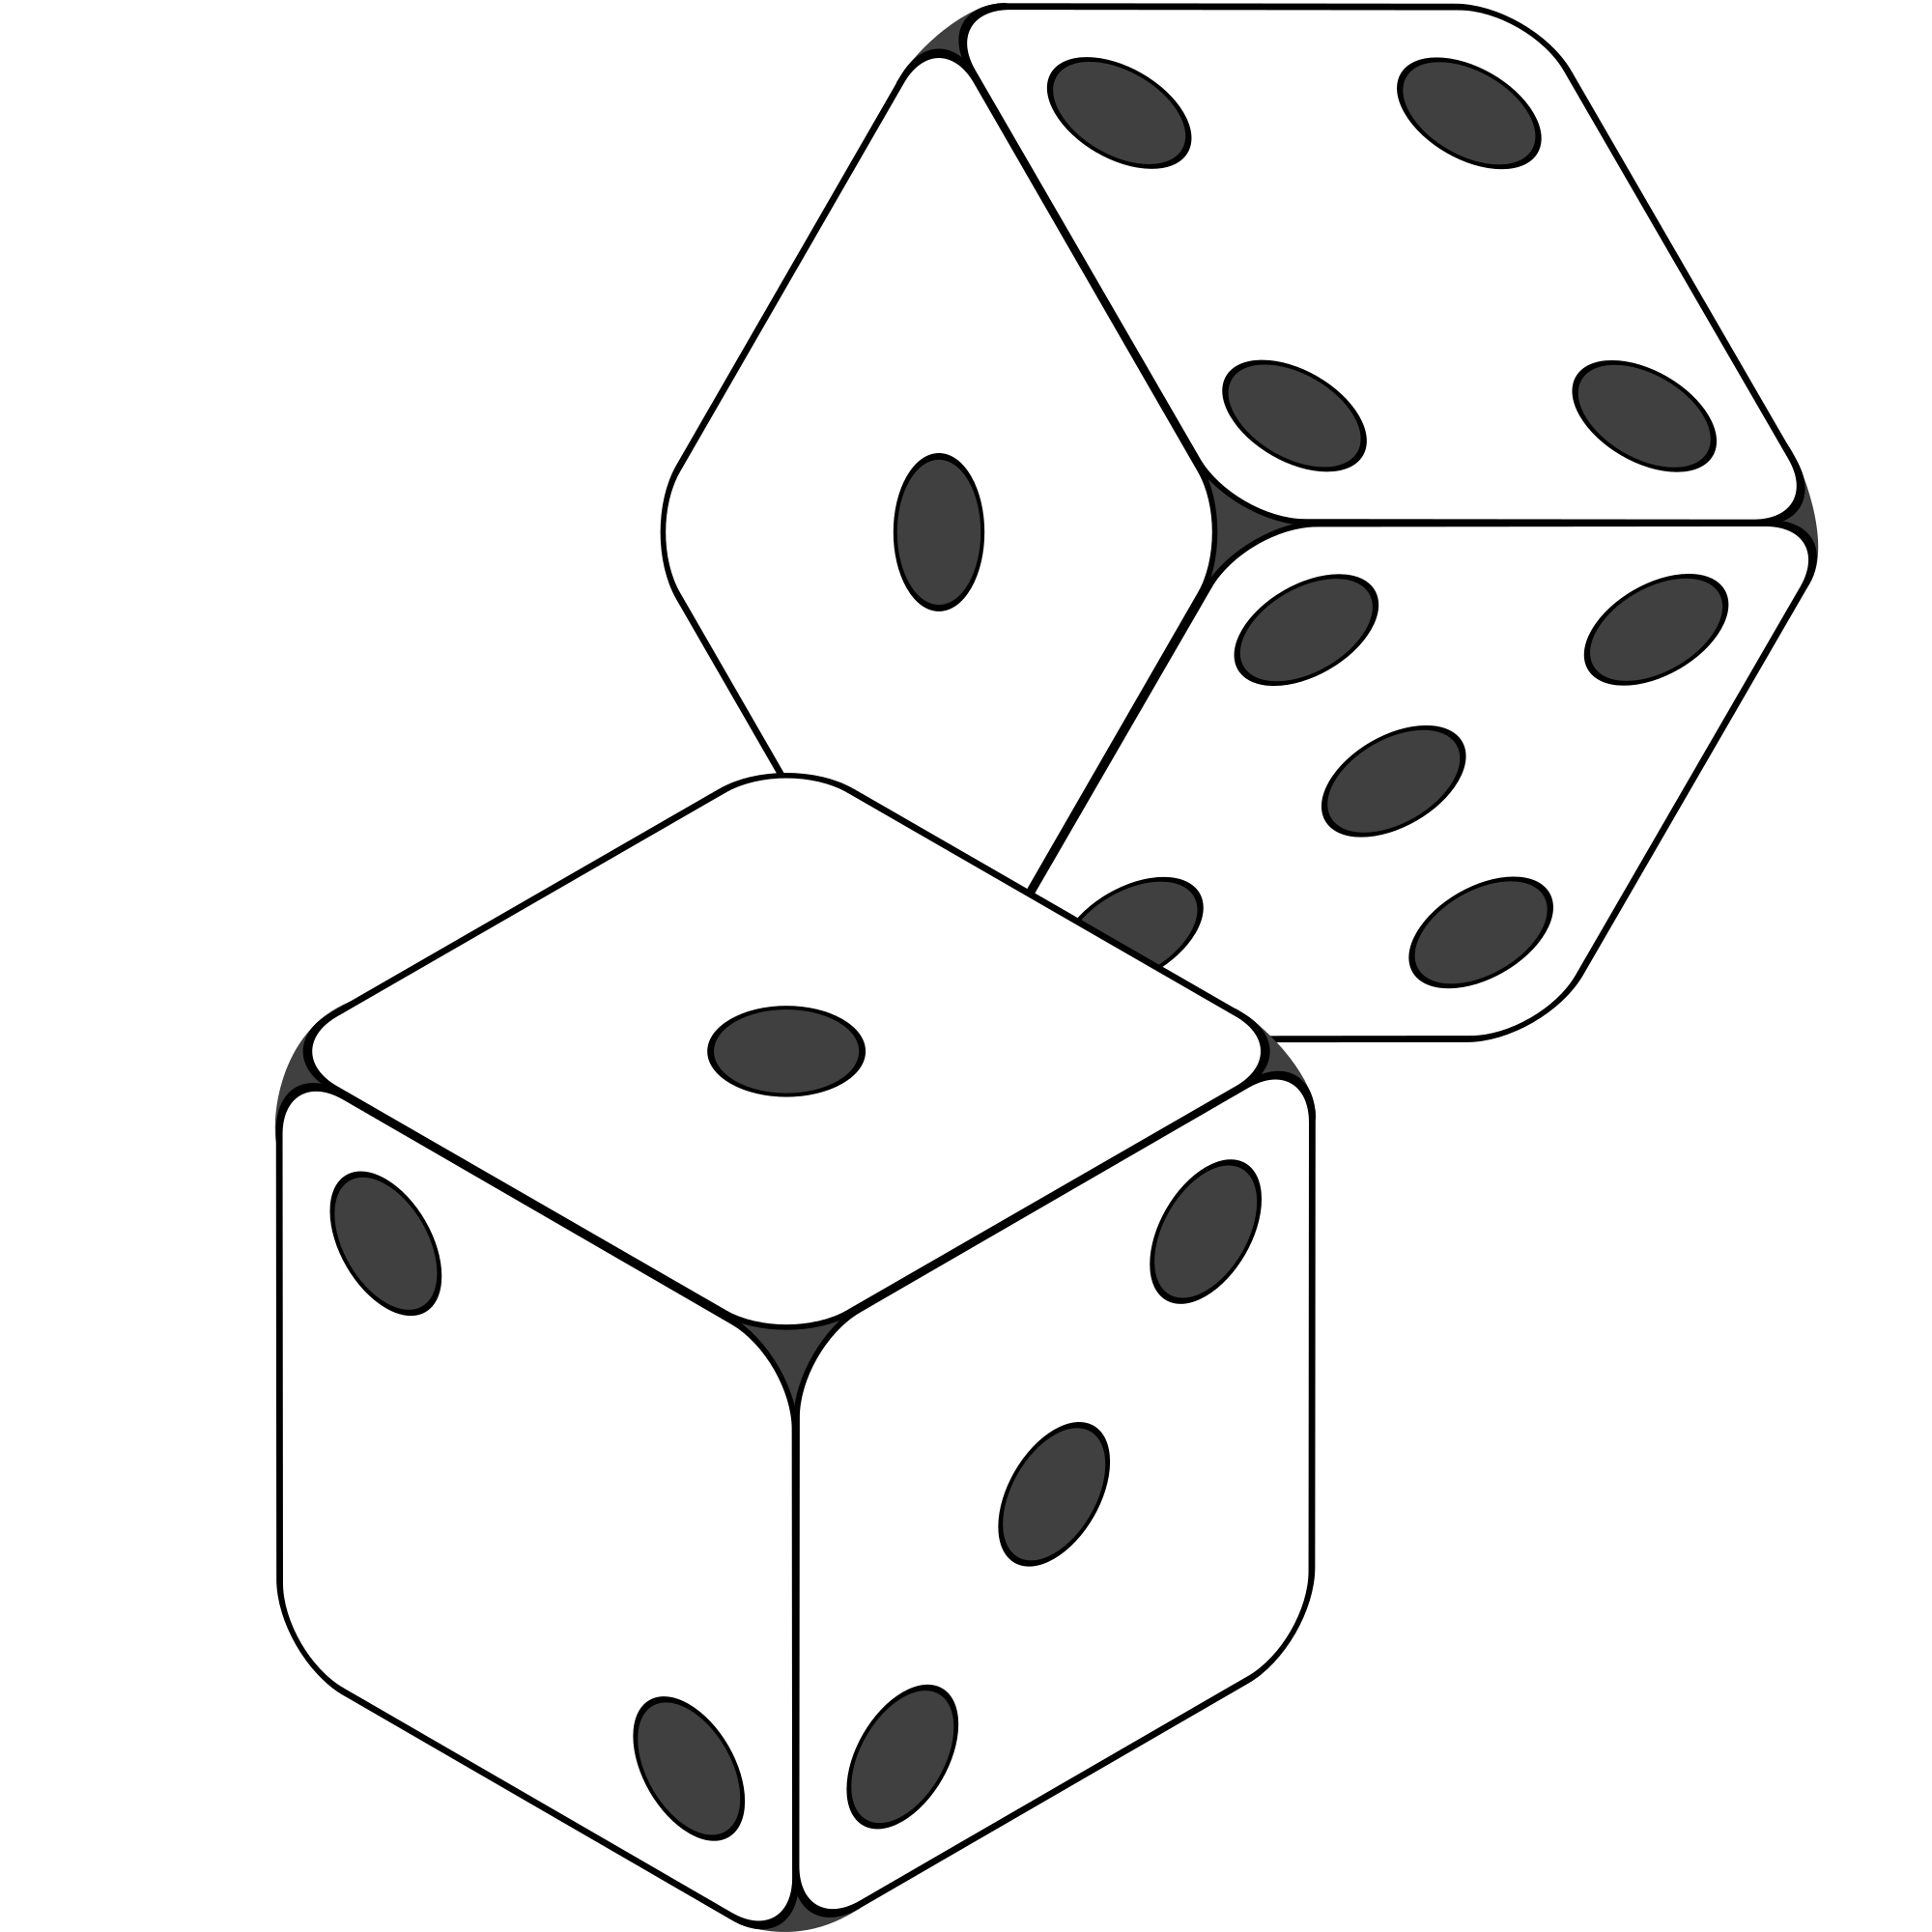 Rolling in money clipart clip black and white stock number 3 dice clipart black and white - Clipground clip black and white stock